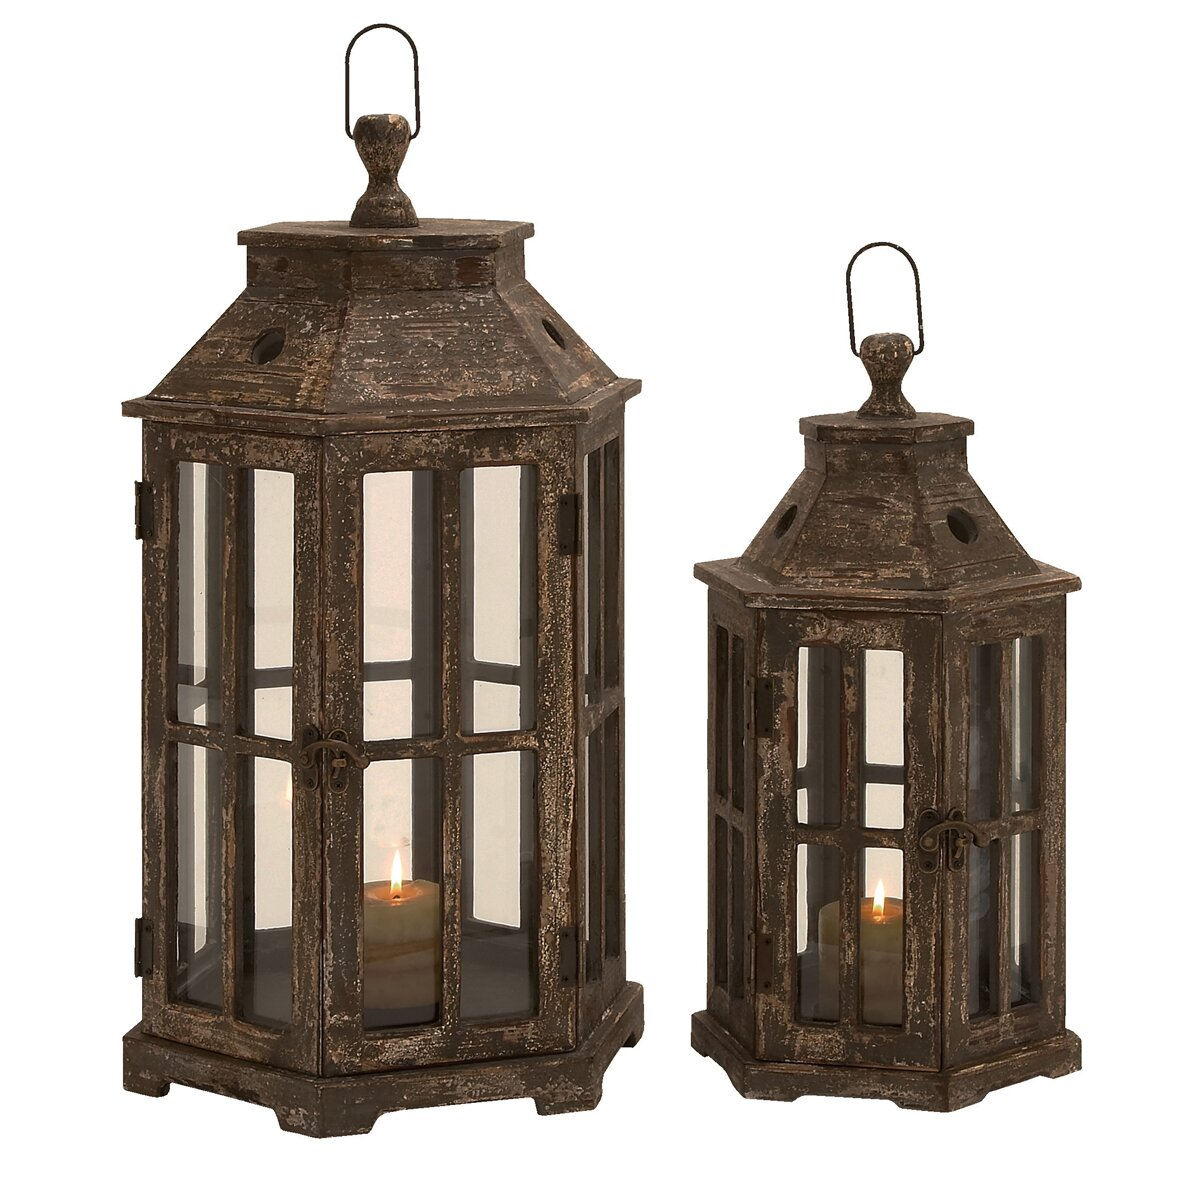 Ec World Imports Urban 2 Piece Wood Lantern Candle Holder